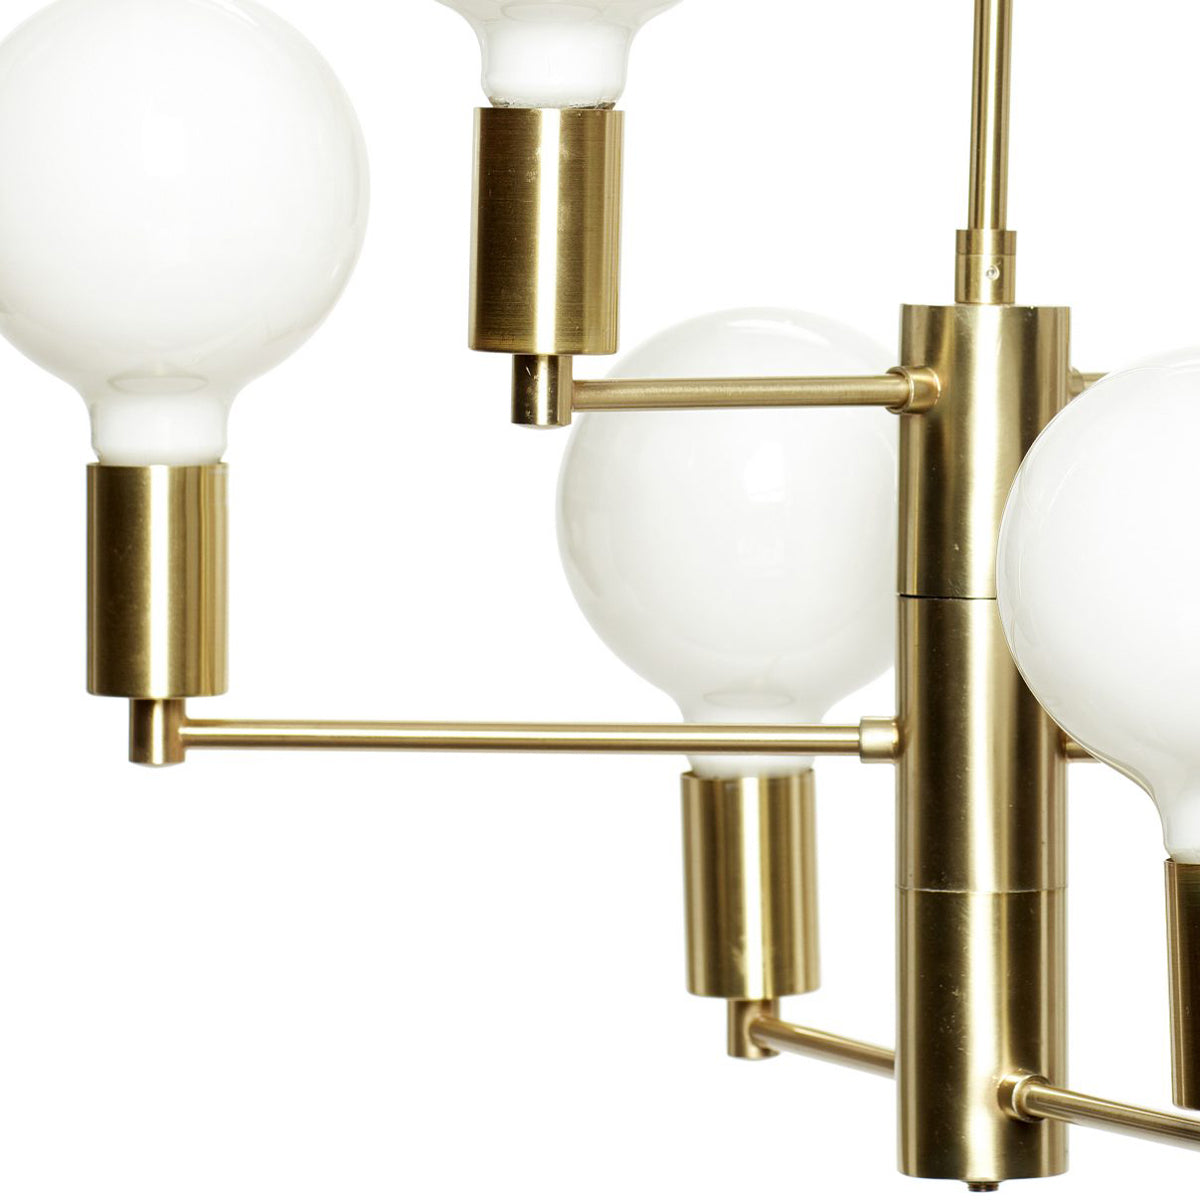 Elegant and beautiful ceiling lamp from Hübsch